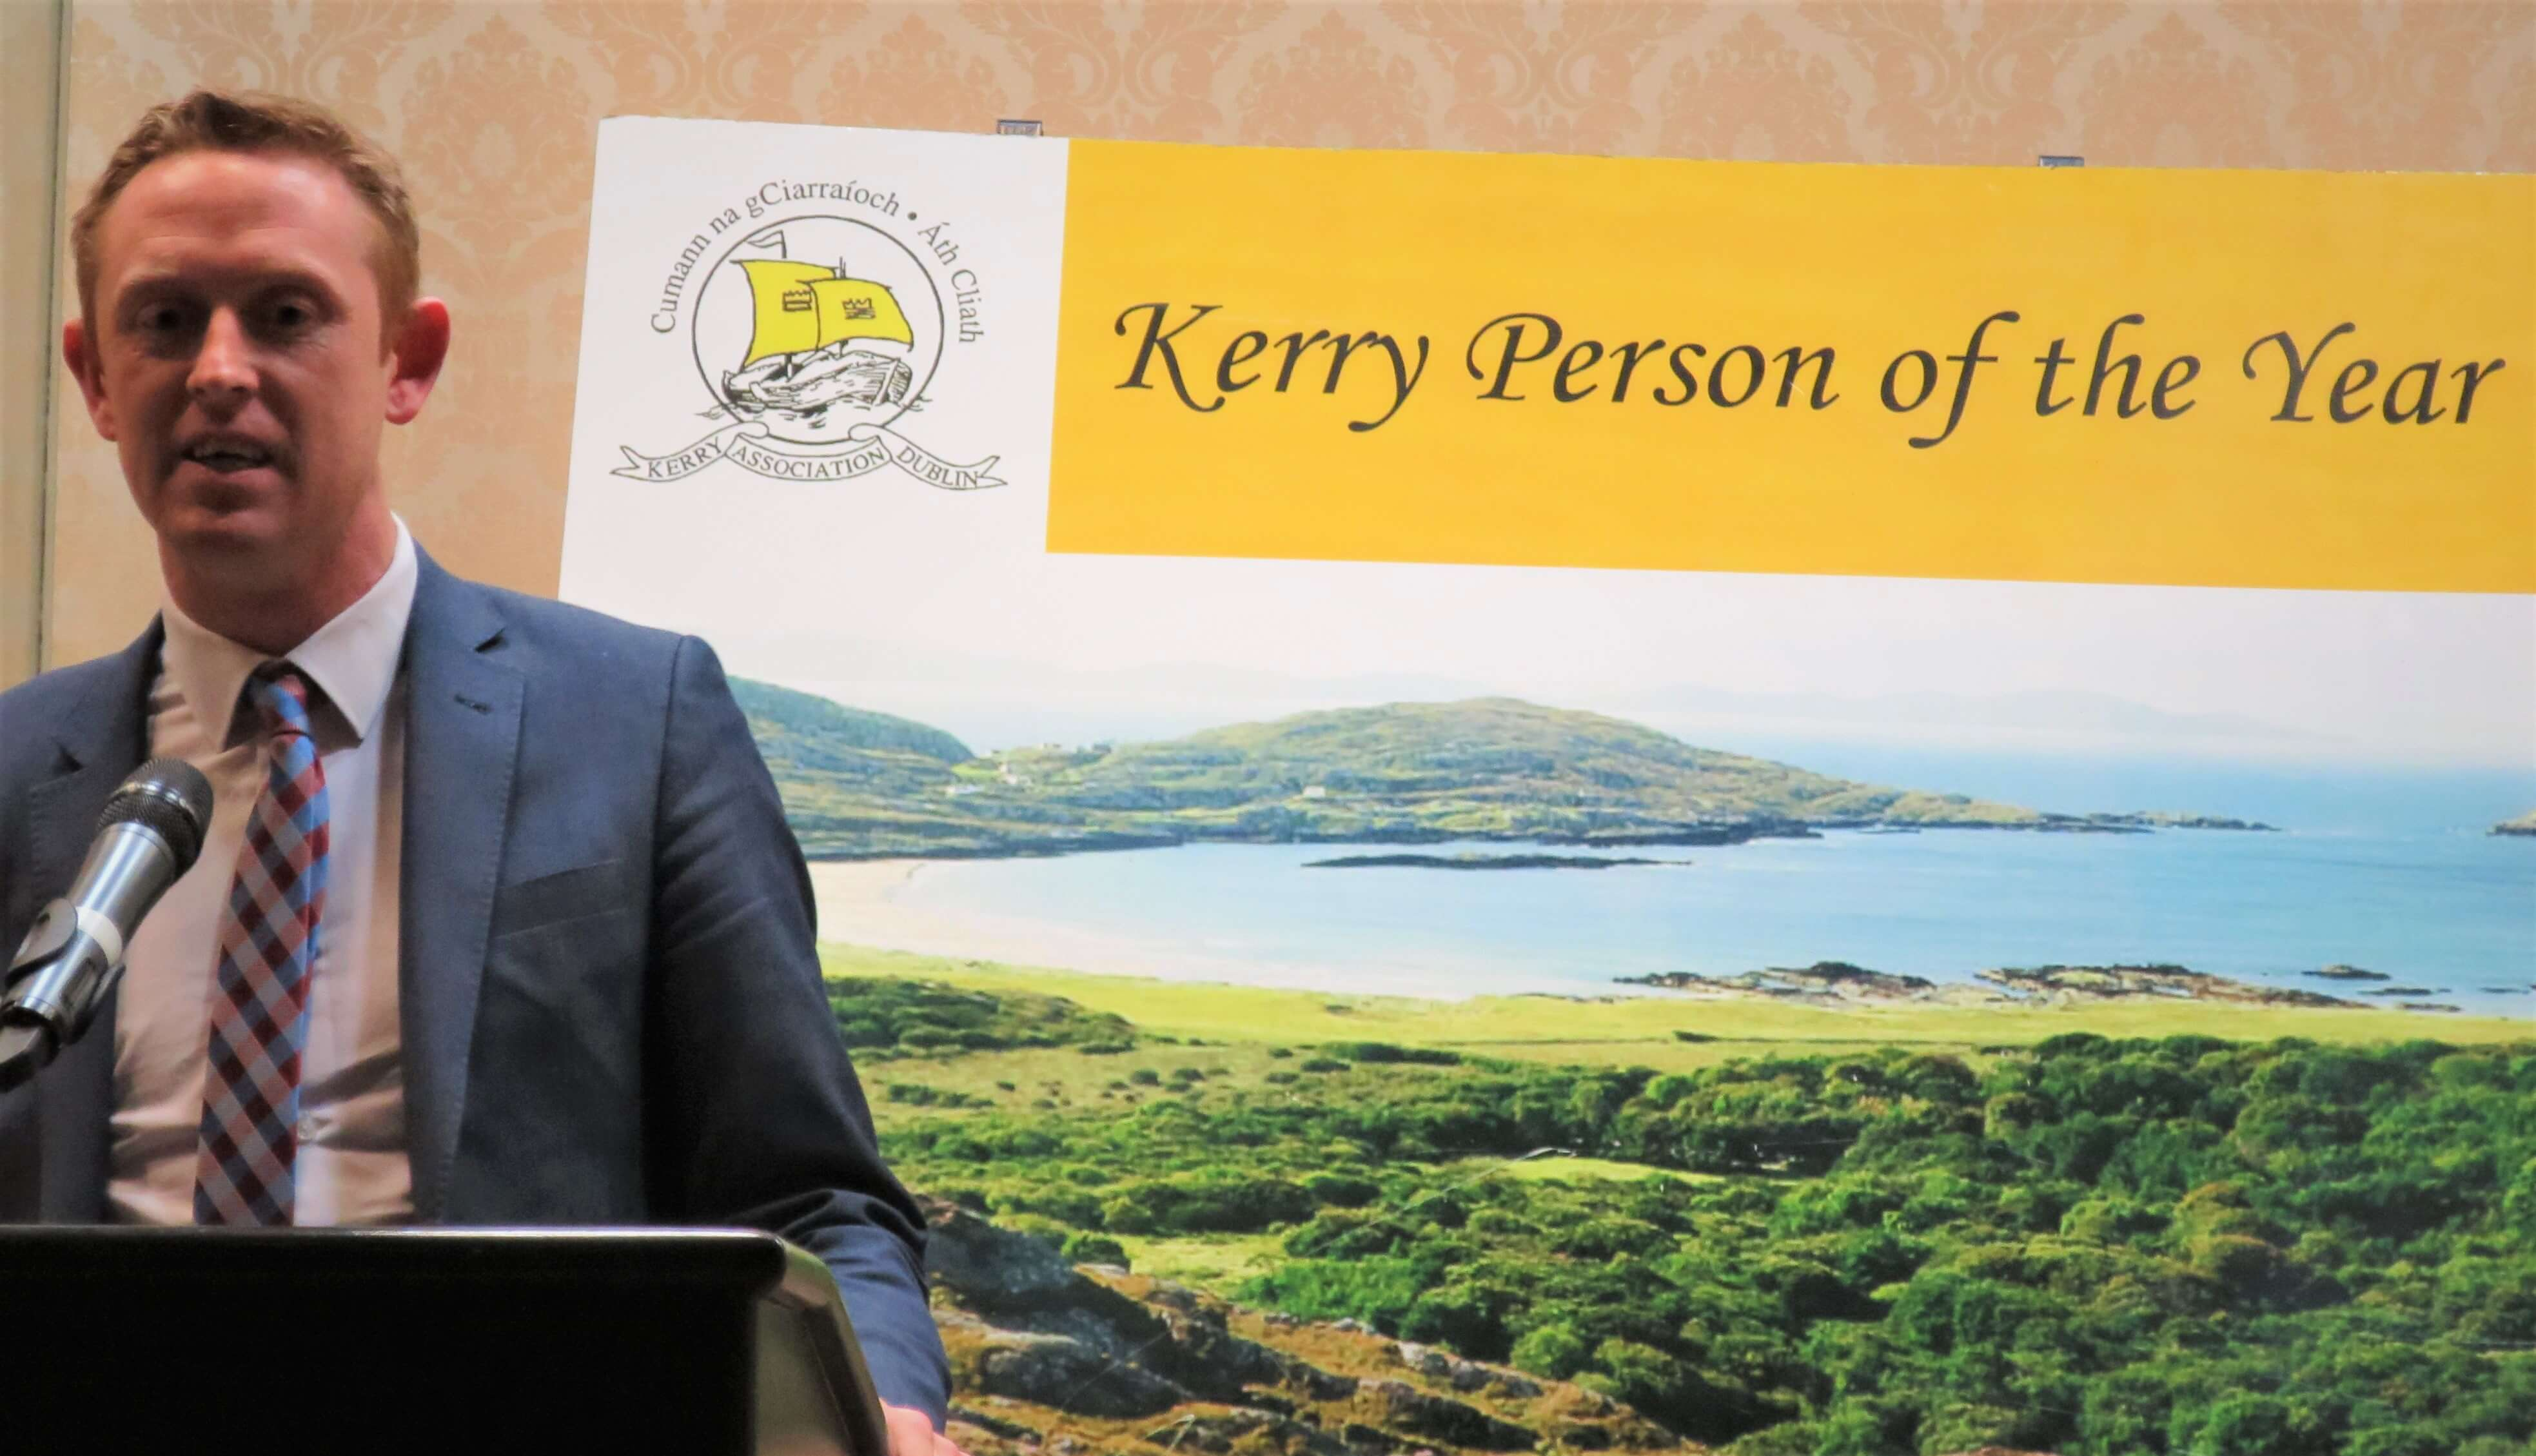 Kerry Person 2016